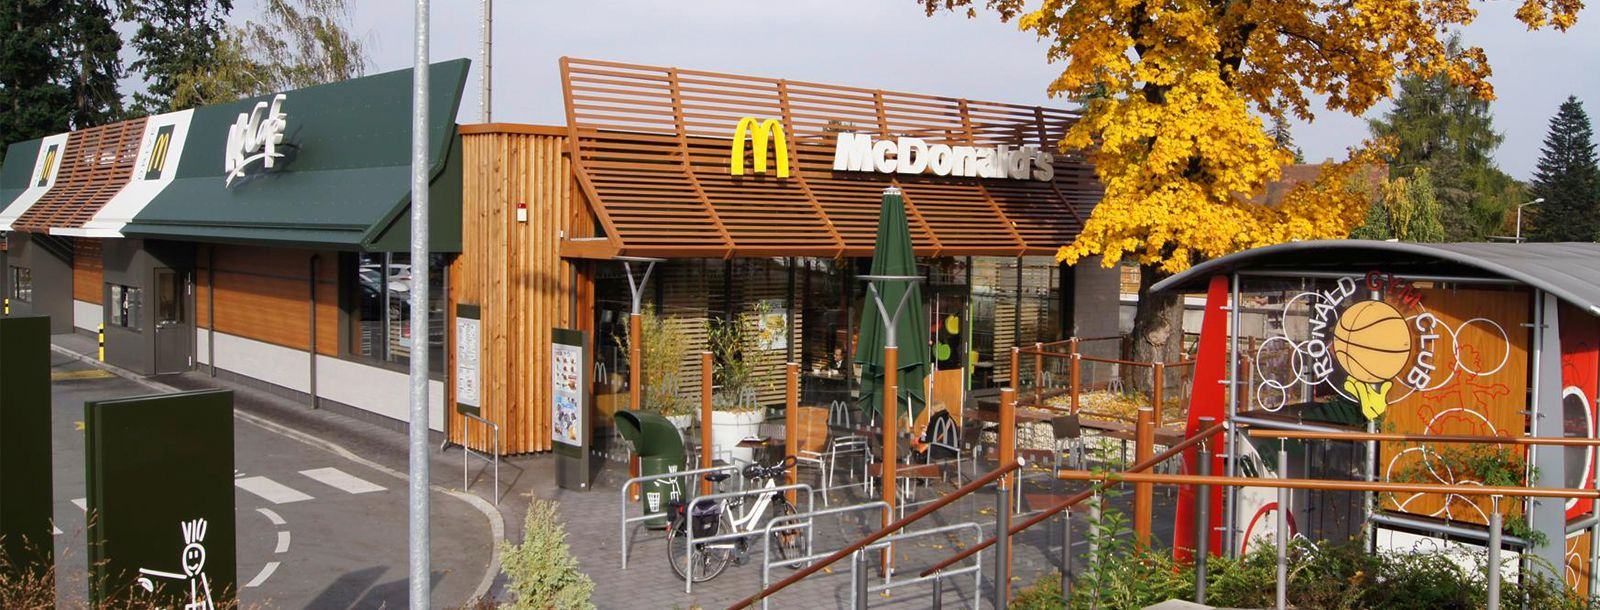 Frth_Unterfarrnbacher-Strasse_1_McDonalds